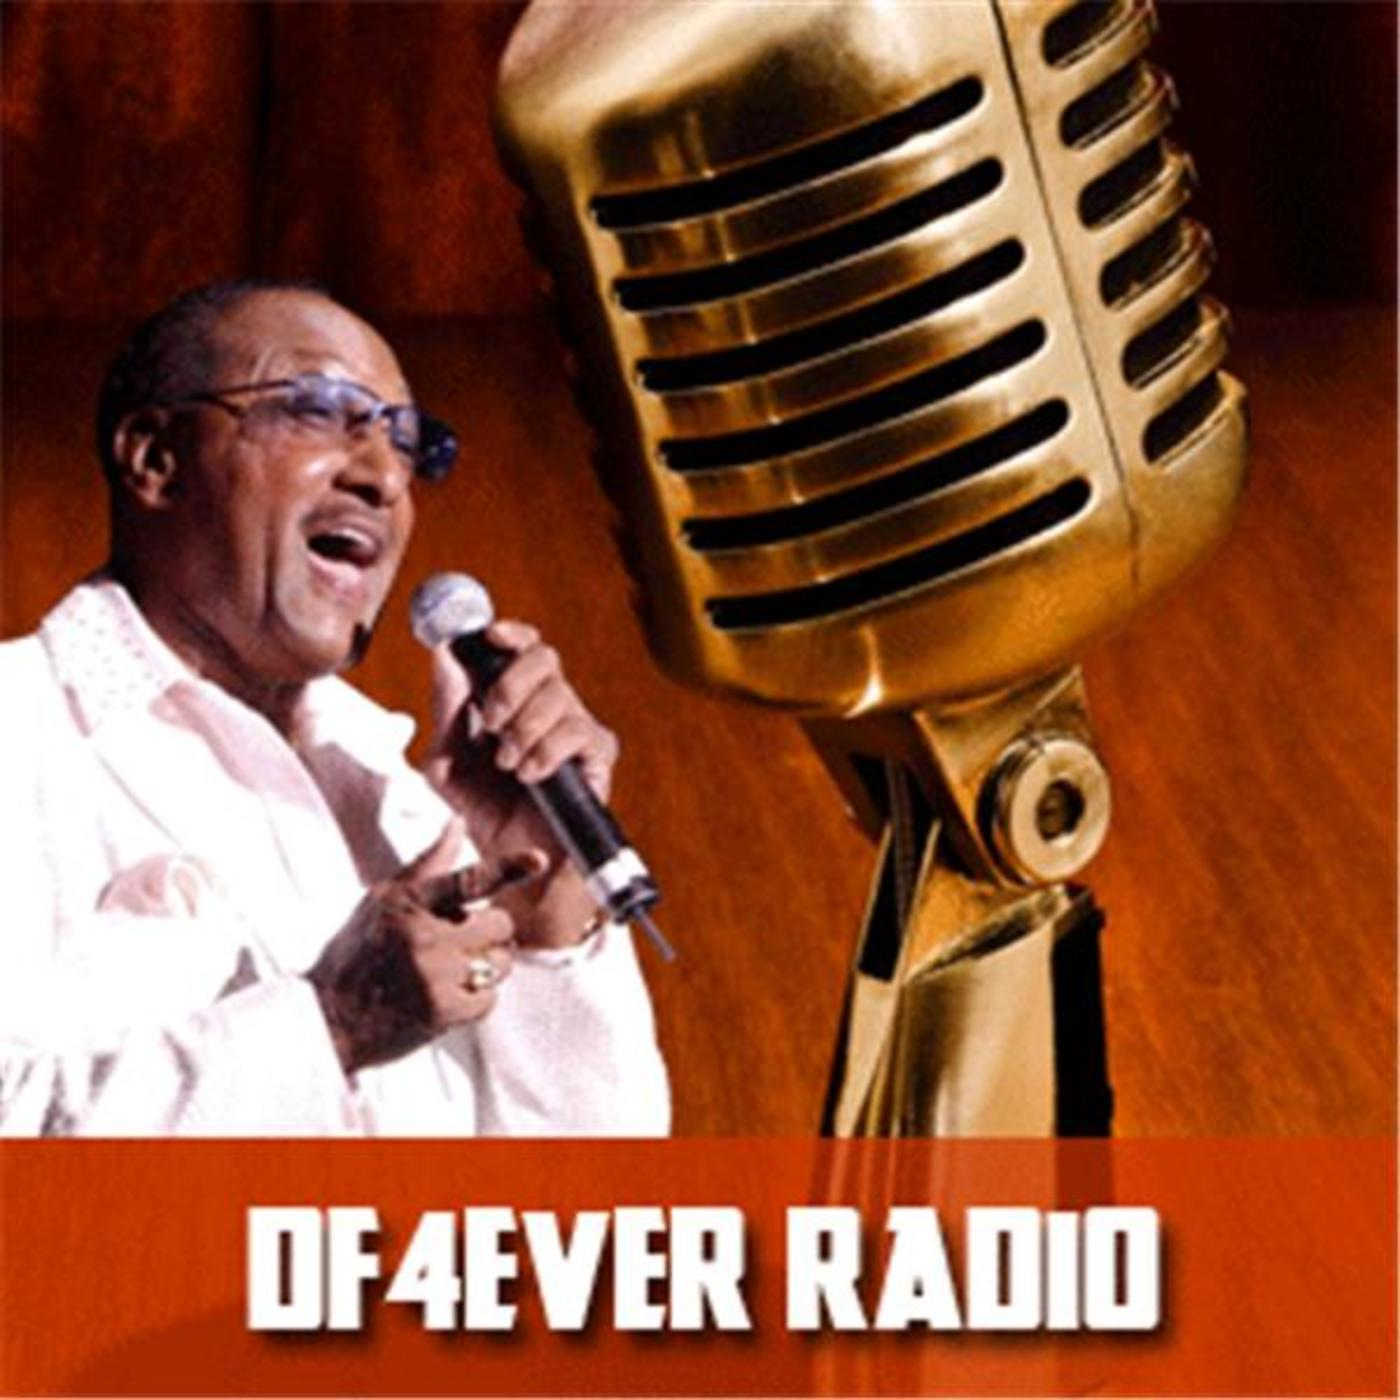 DF4Ever Radio